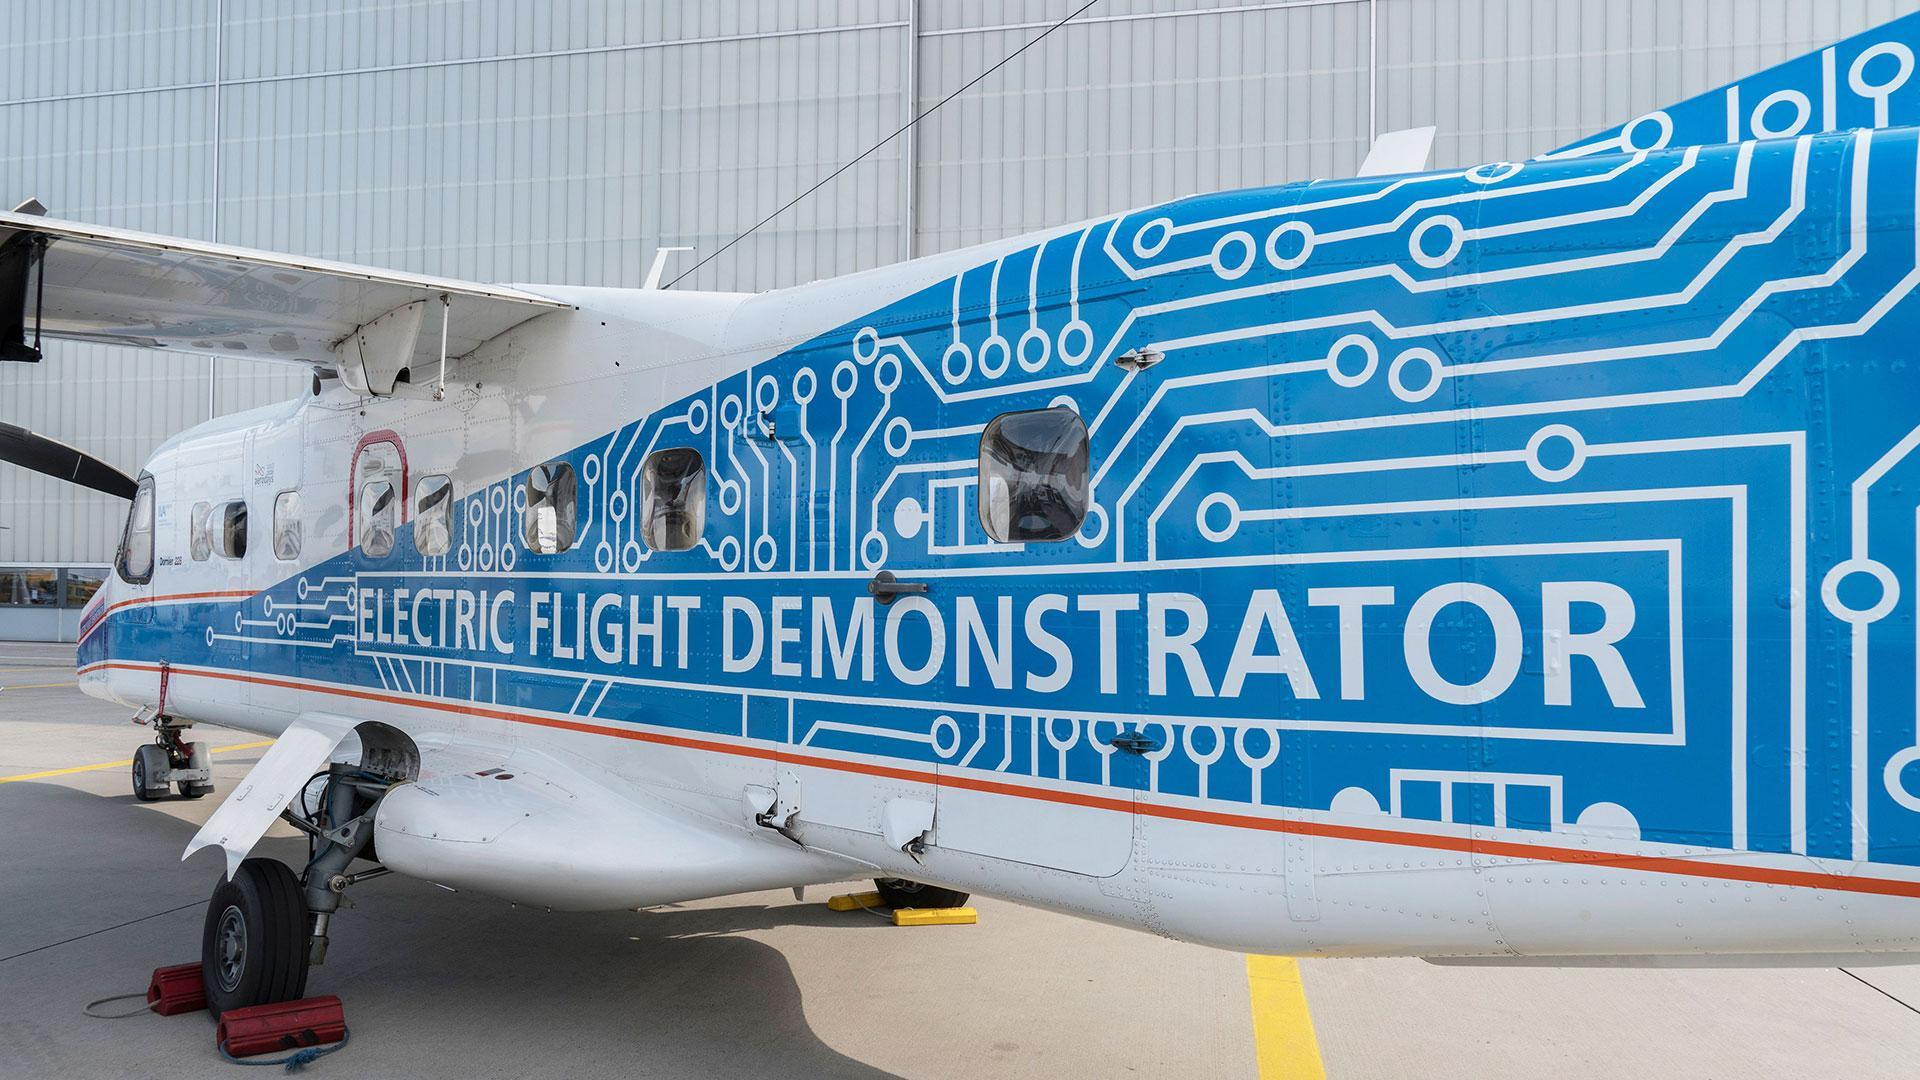 DLR's Do 228, D-CFFU as the 'Electric Flight Demonstrator', with a special sticker